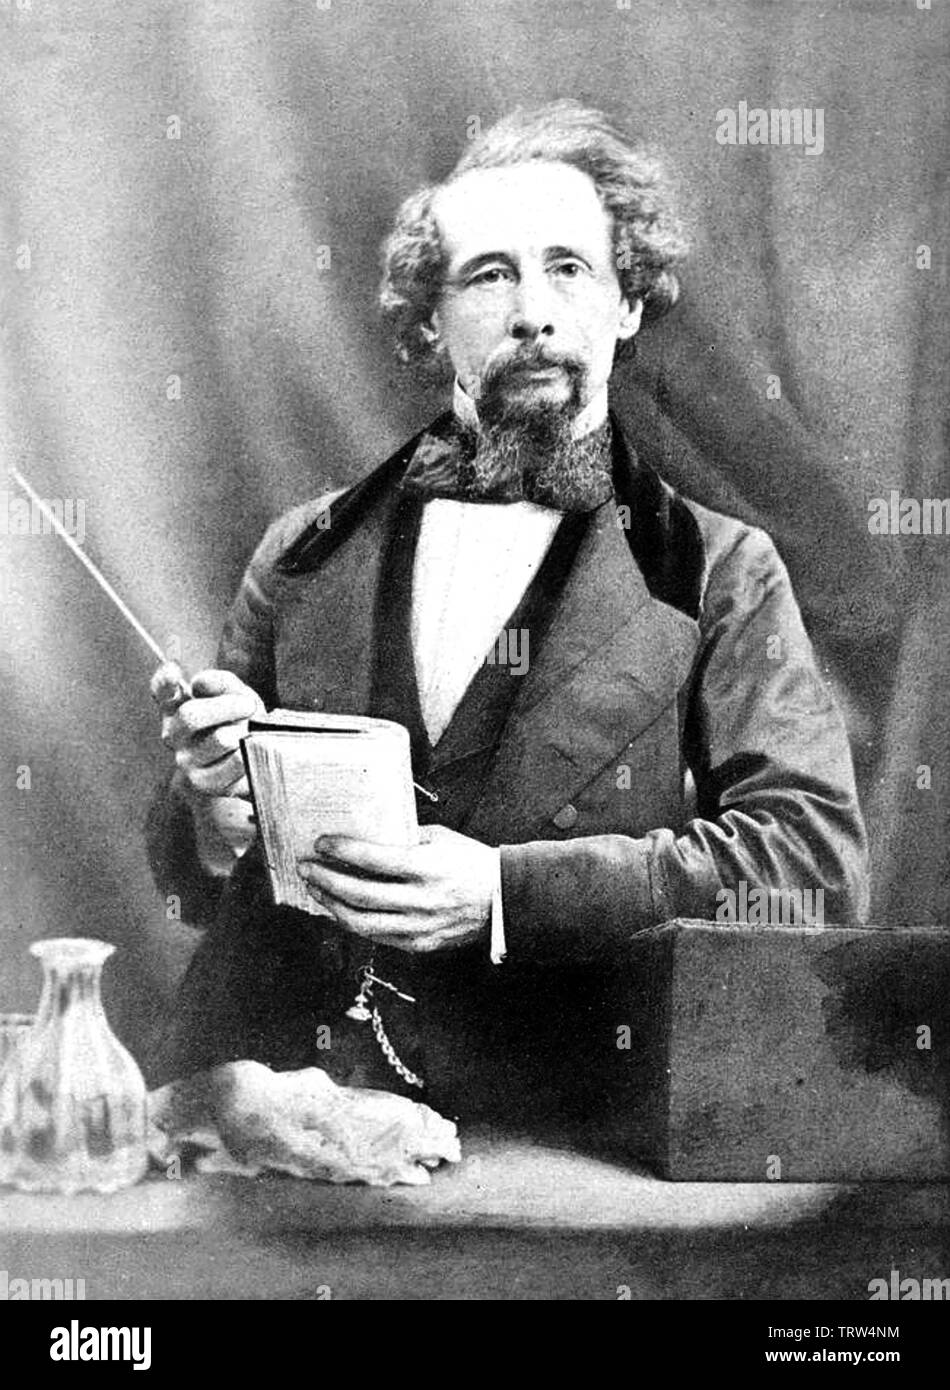 CHARLES DICKENS (1812-1870) English novelist giving a lecture about 1858 Stock Photo